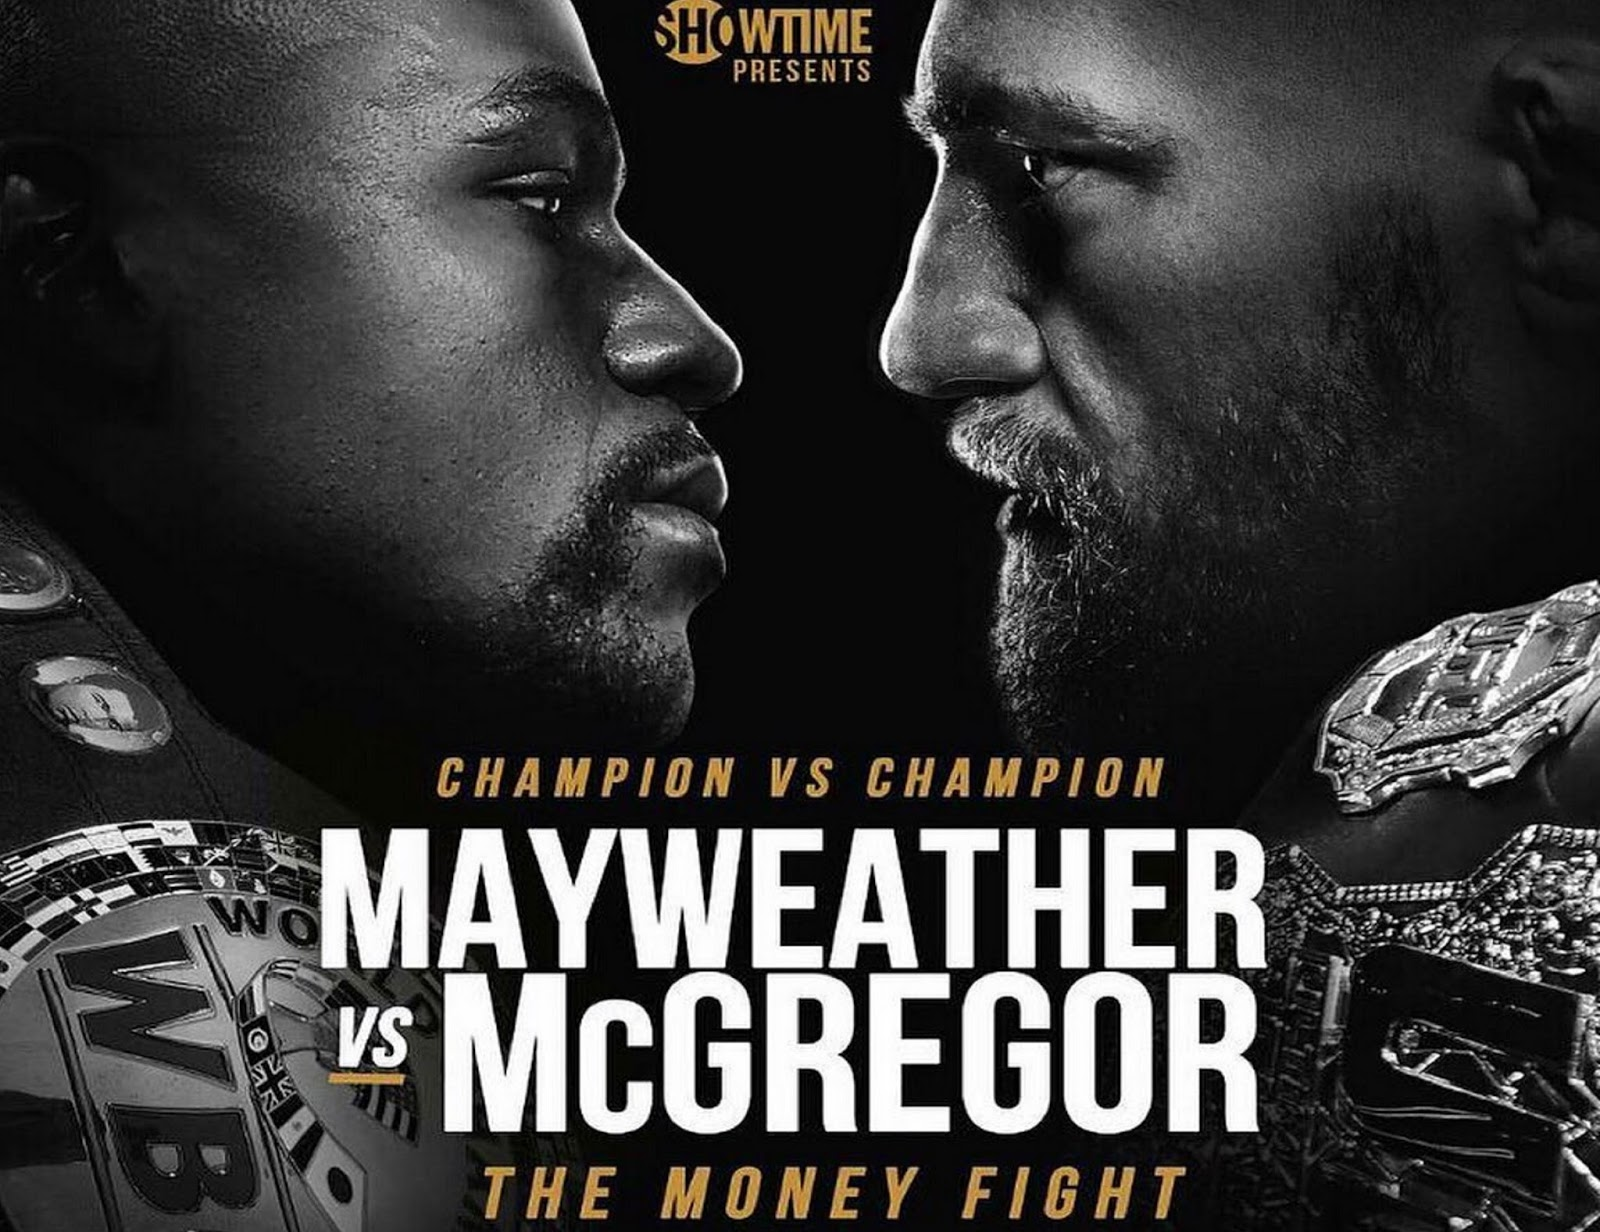 FLOYD MAYWEATHER VS. CONOR MCGREGOR 9